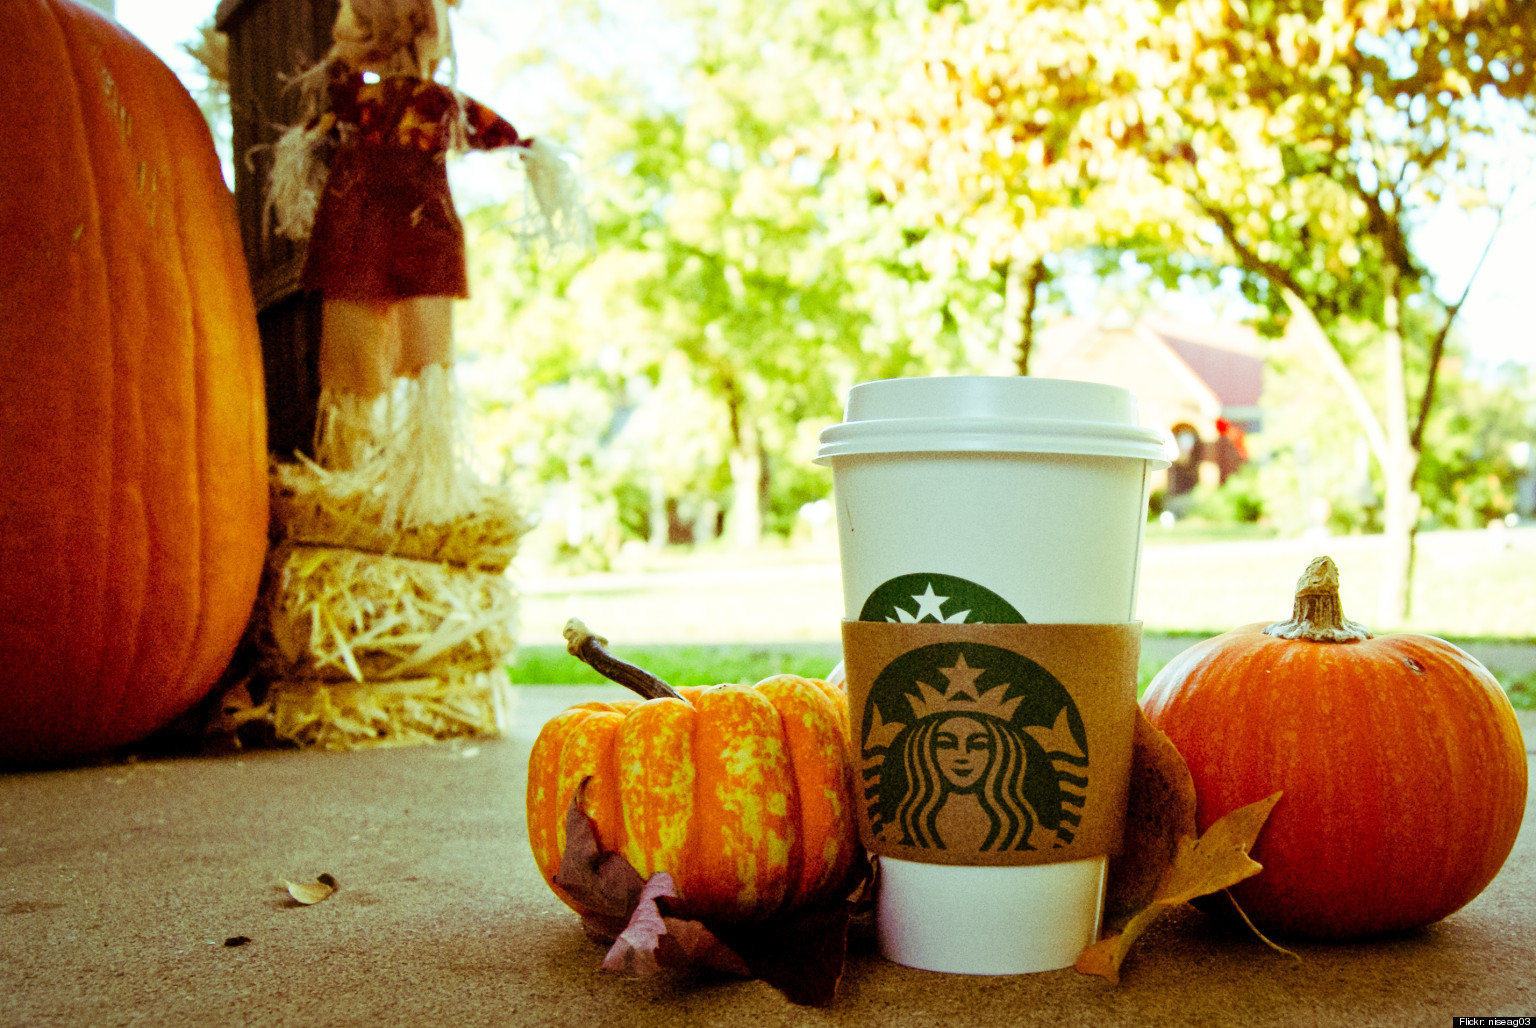 Fall Pumpkin Computer Wallpaper Pumpkin Spice Latte Shortage Starbucks Annual Autumn